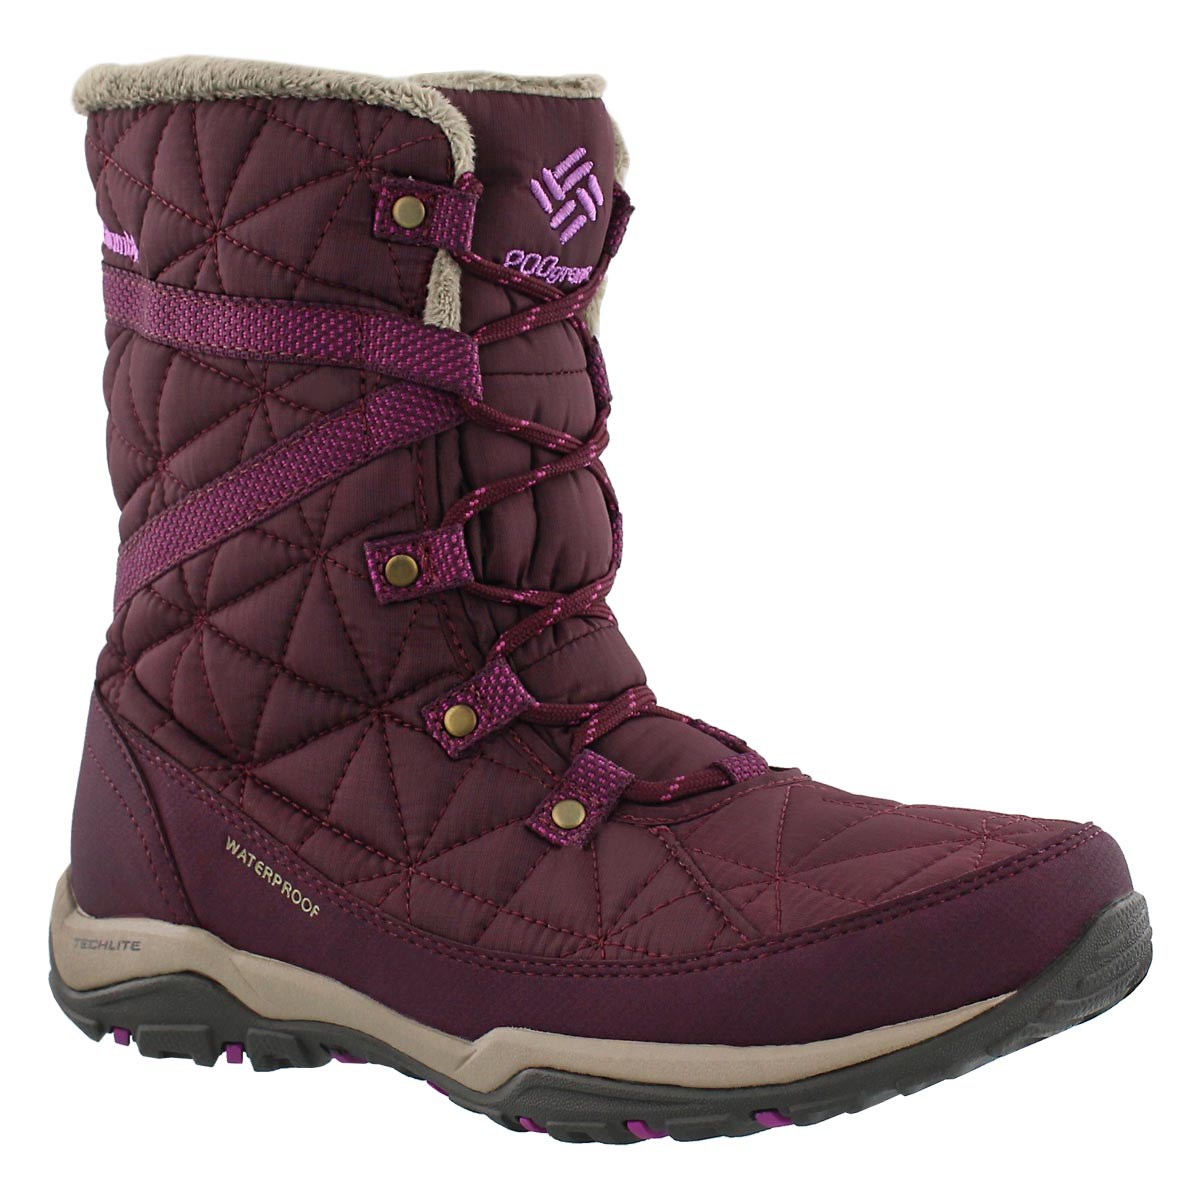 Women's LOVELAND MID OmniHeat purple boots